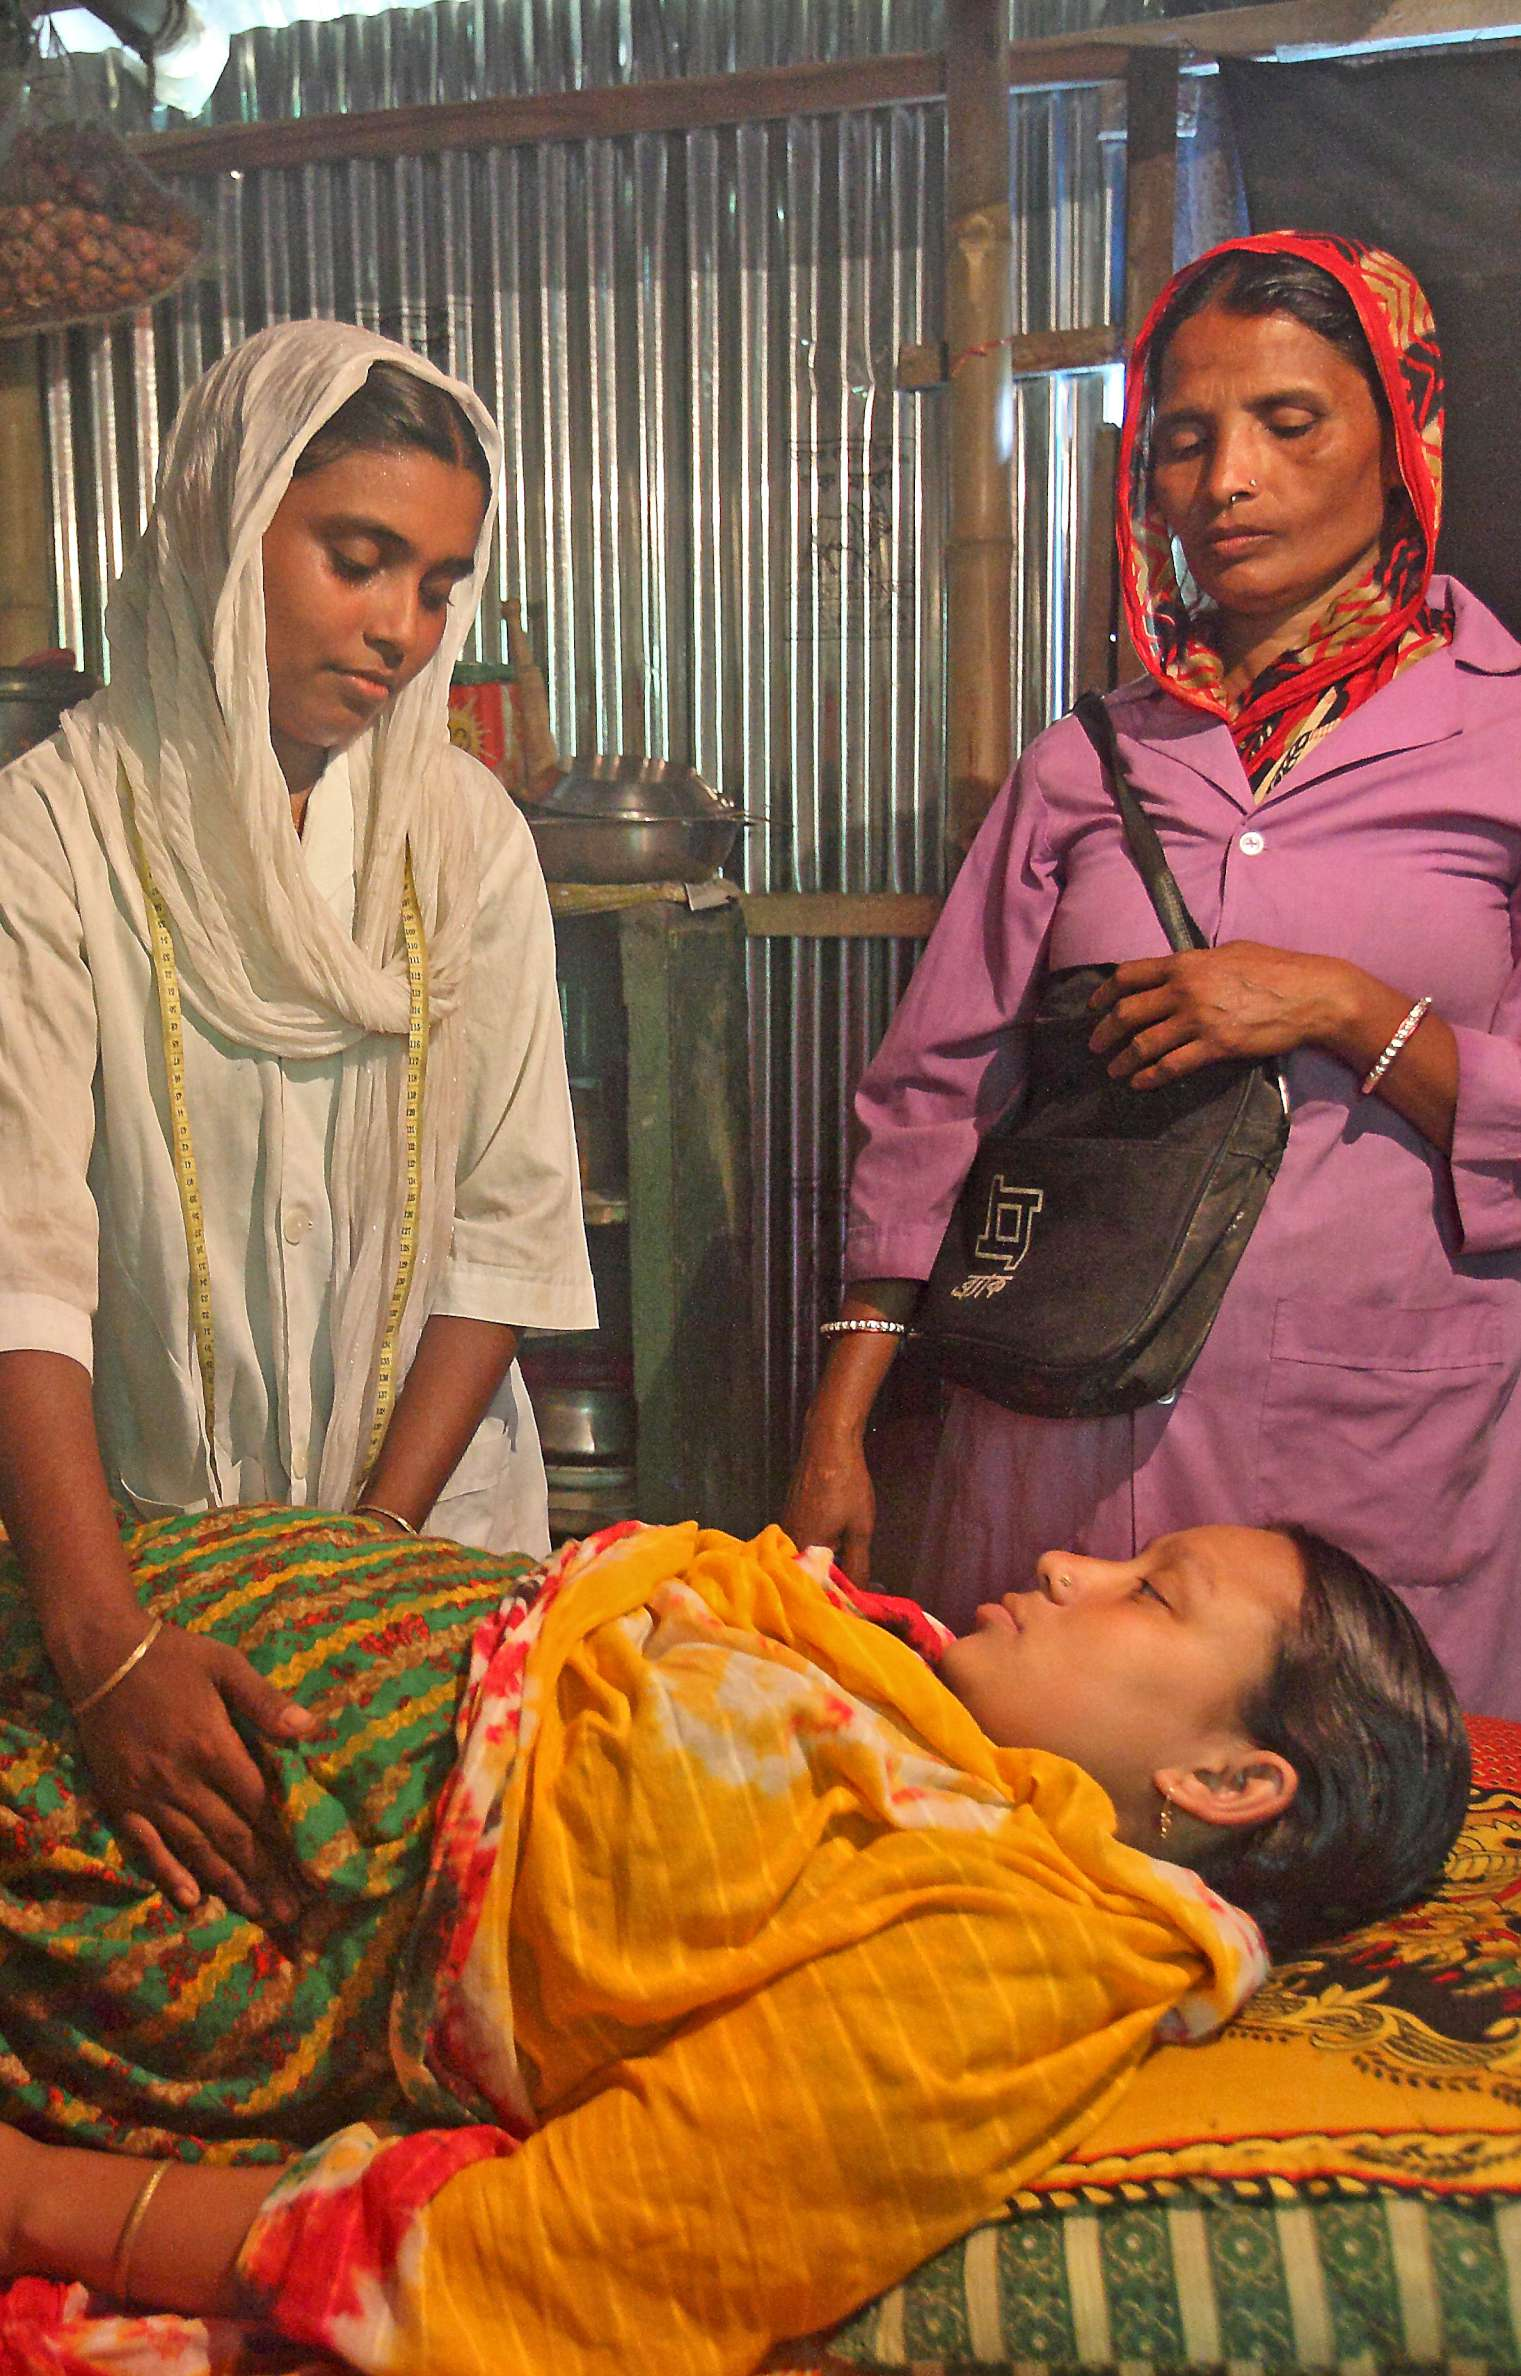 The patient, pictured here with a birth attendant and a community health worker, is an active participant in her own well-being. Photo courtesy: BRAC